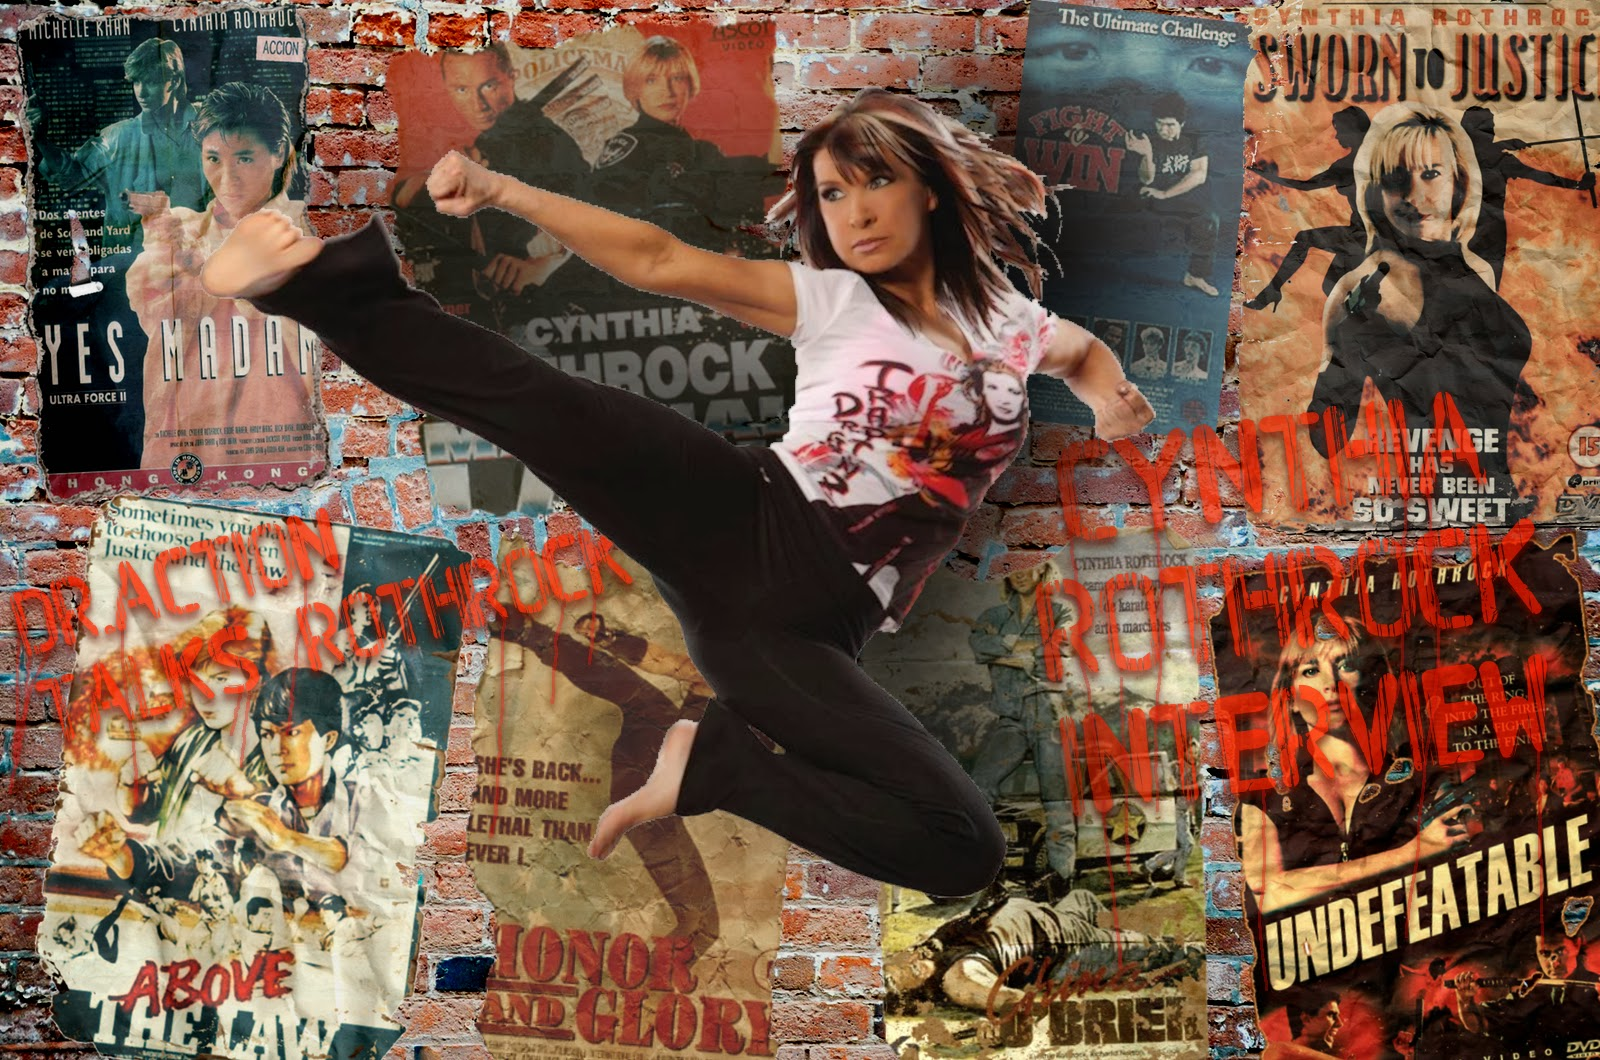 cynthia rothrock pictures wallpapers - photo #23